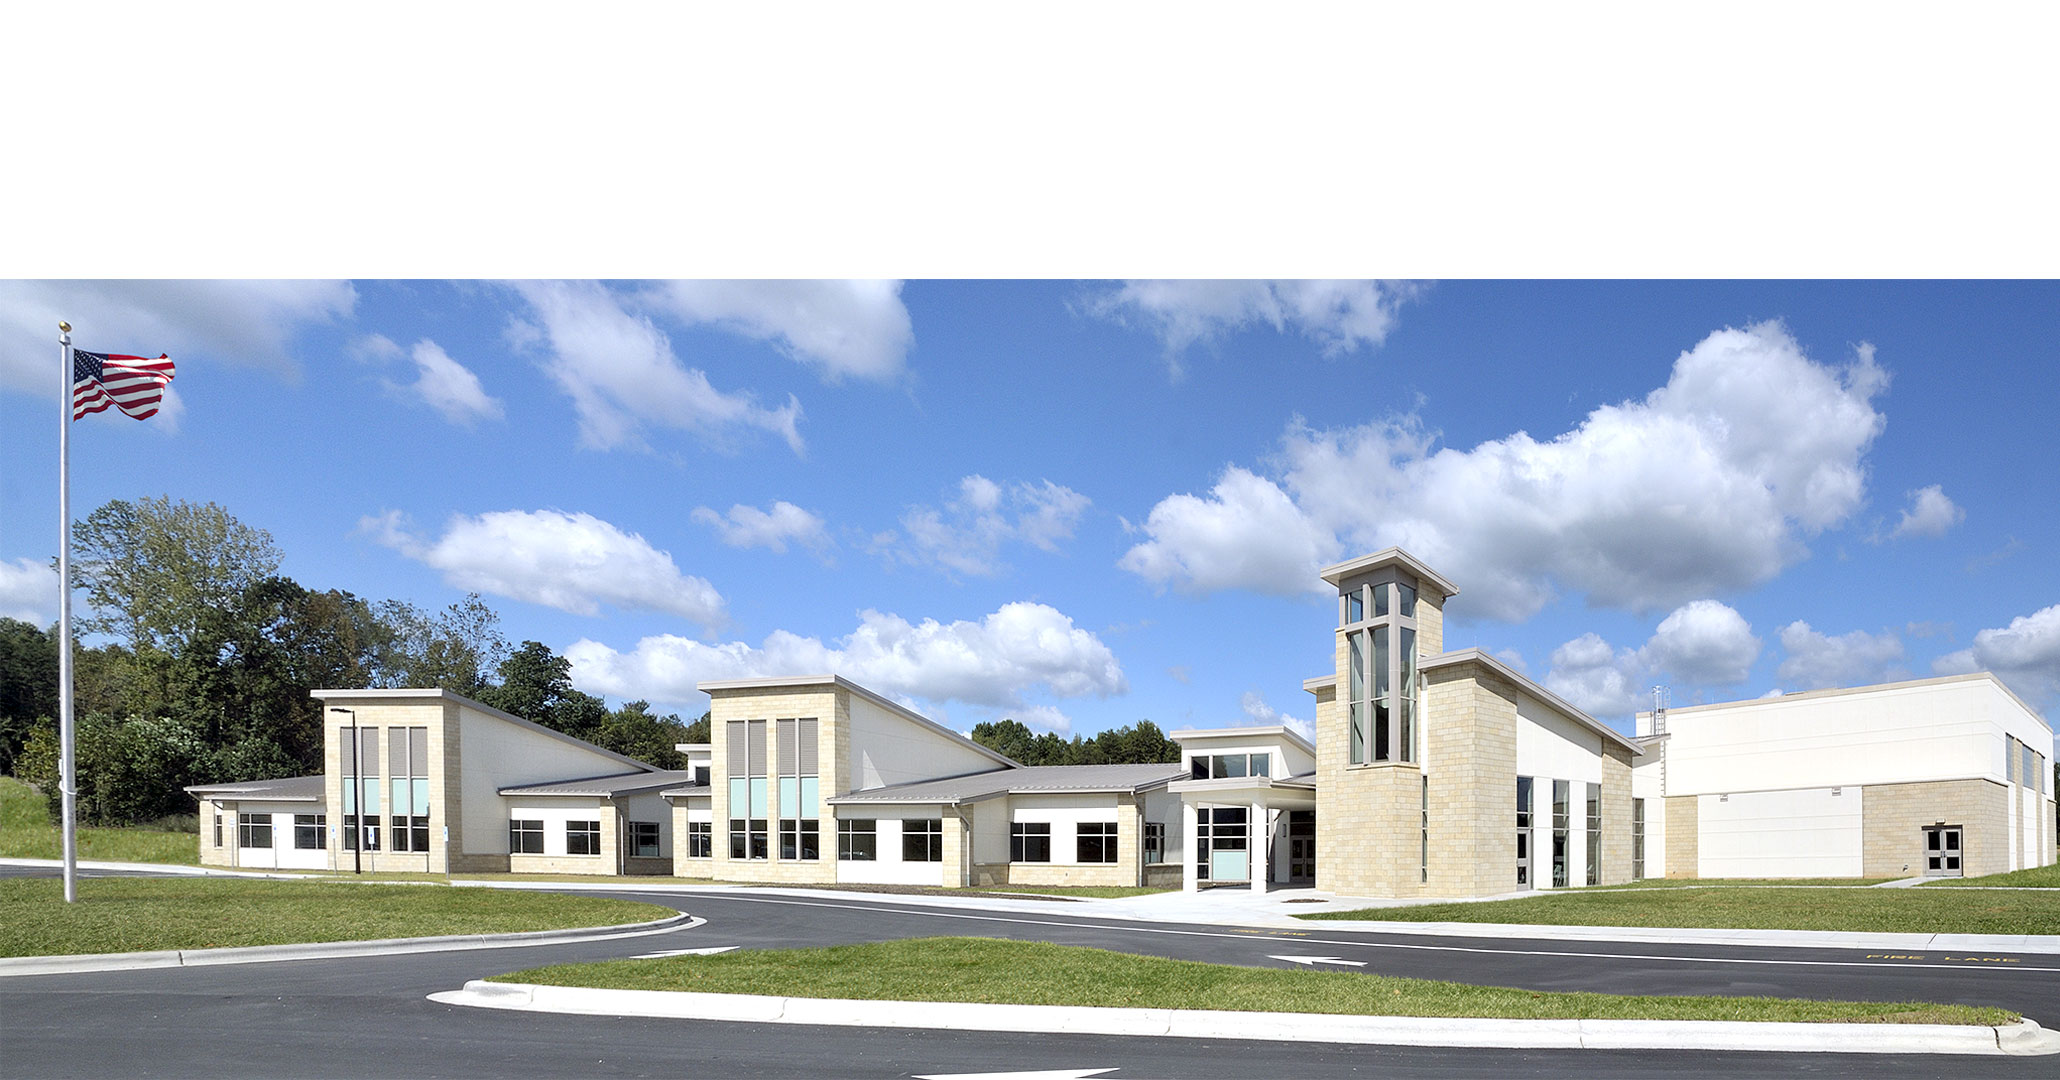 The Charlotte Diocese and Christ the King Catholic High School worked with Boudreaux master planners and architects to design the expansion of the High School.